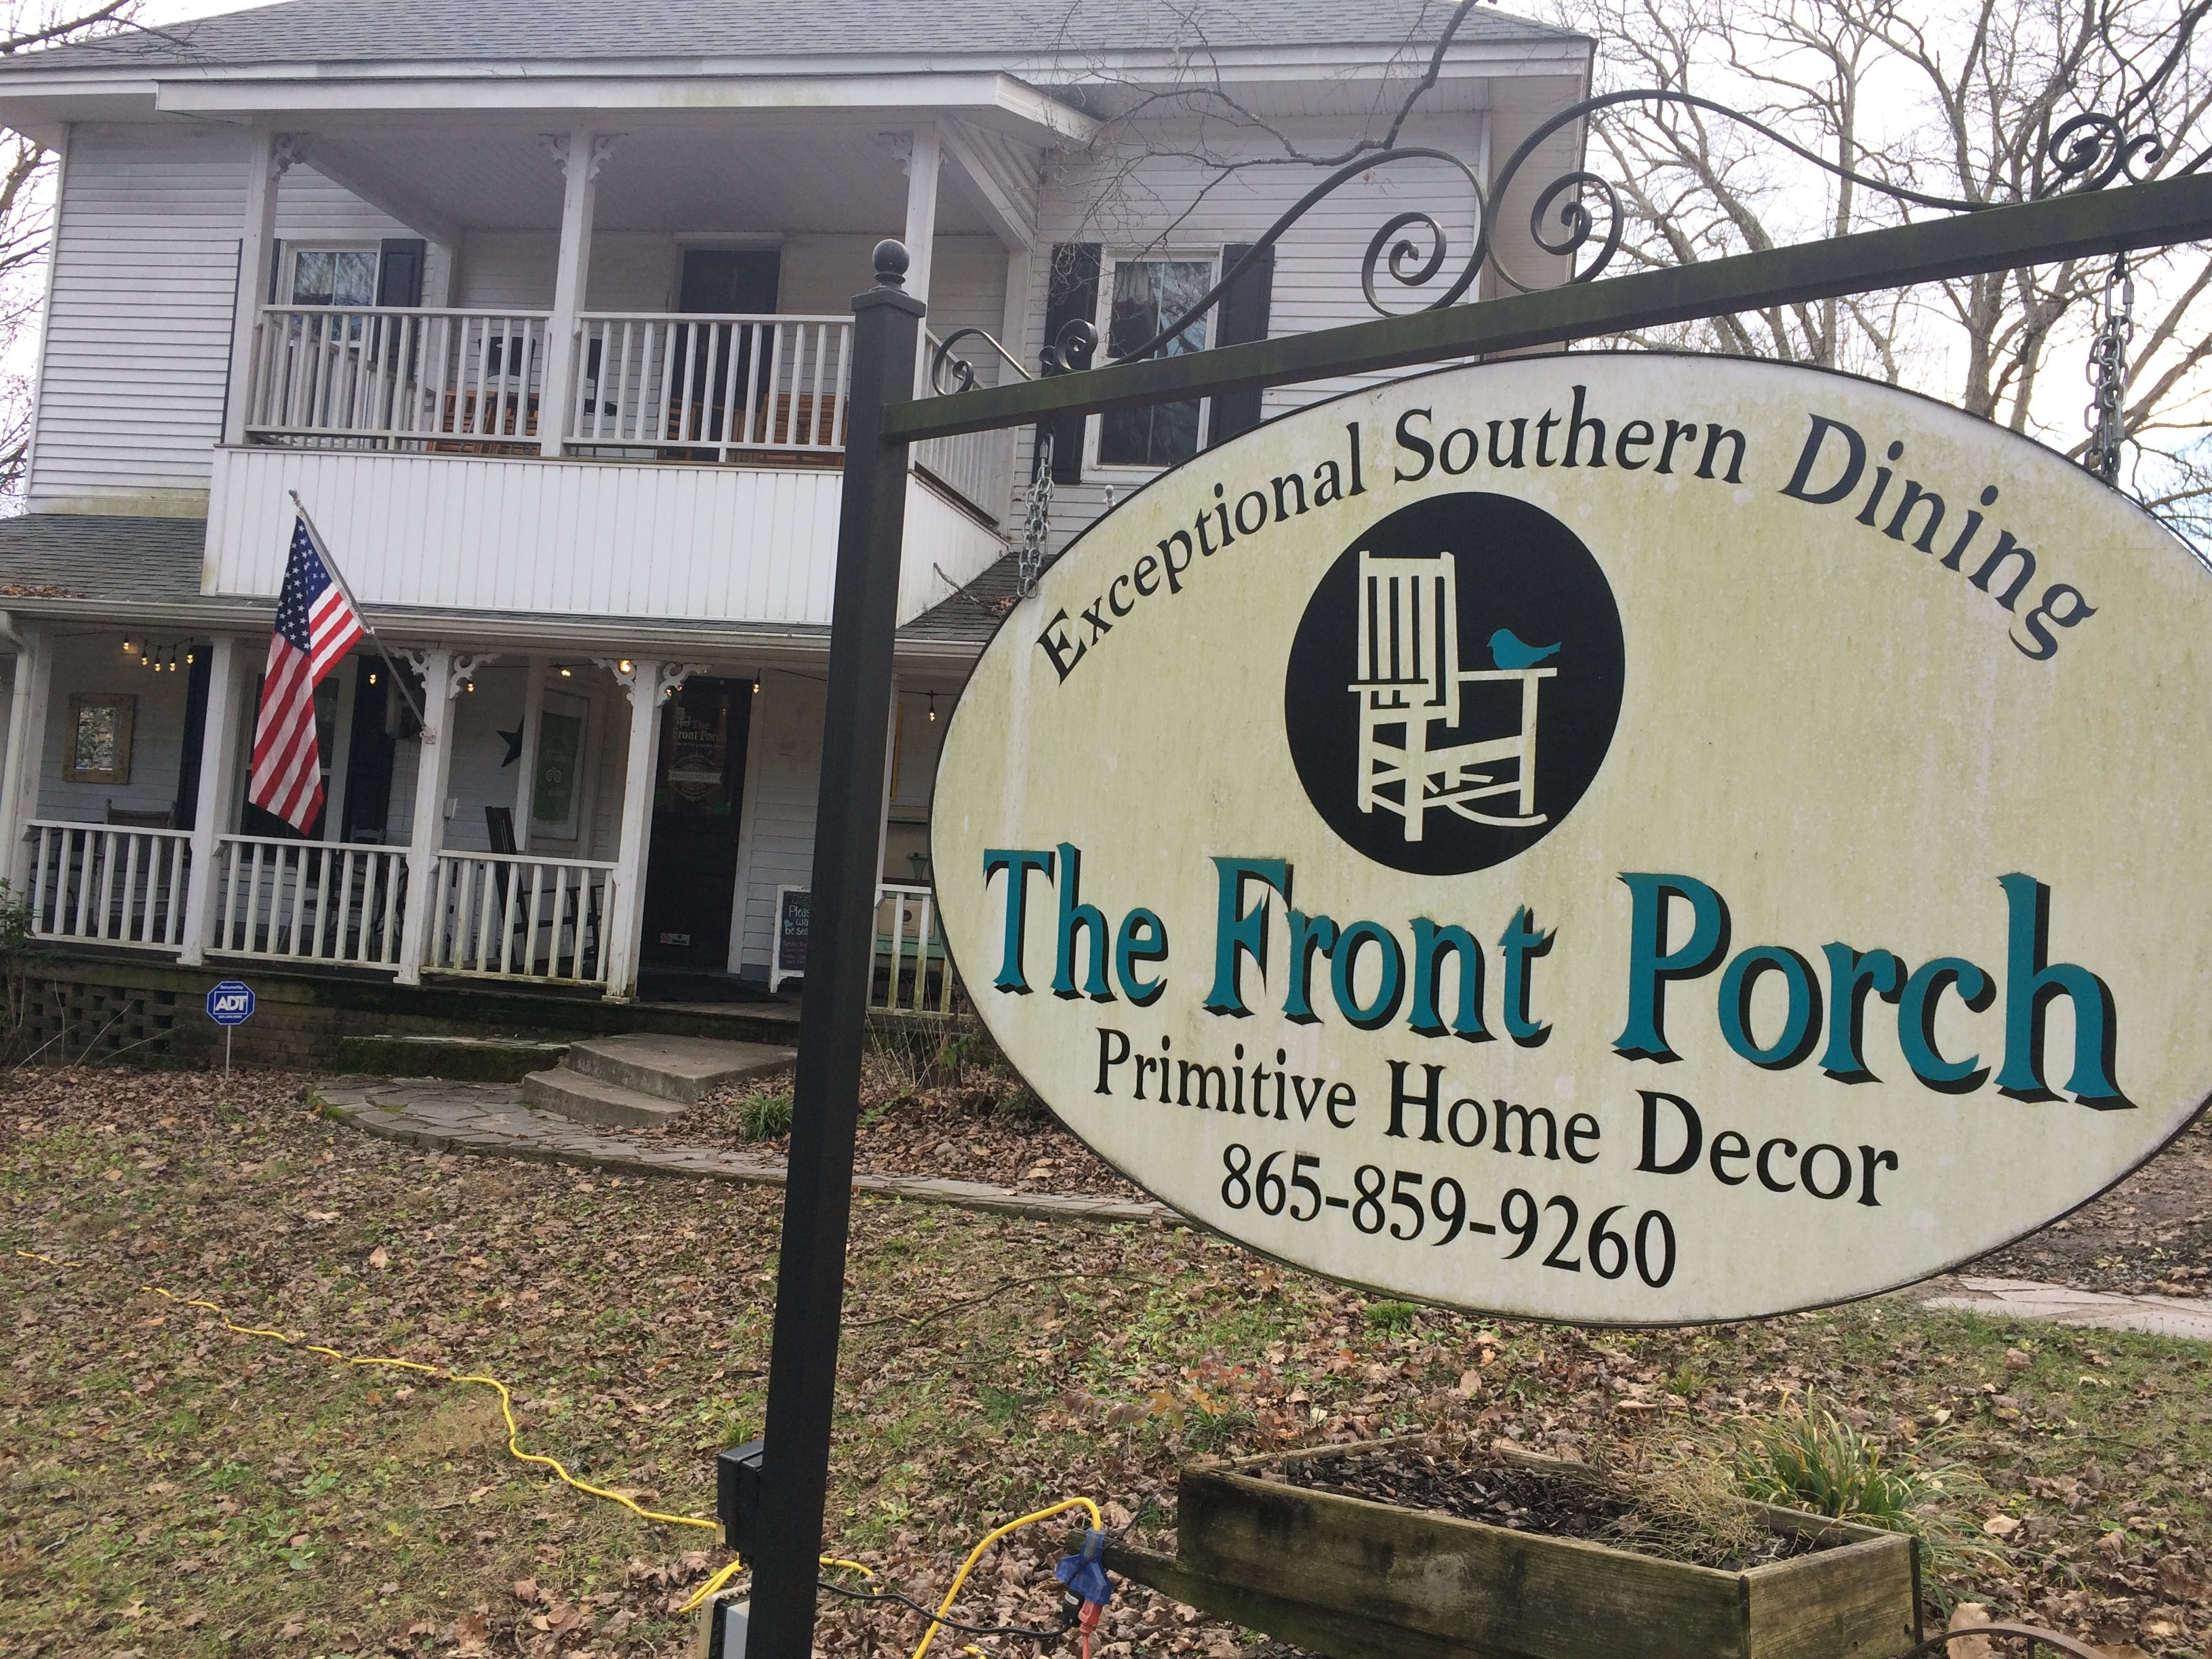 The building at the intersection of Spring Street and Emory Road in Powell has had many uses. Now, it is the home of The Front Porch restaurant and antique gift shop.